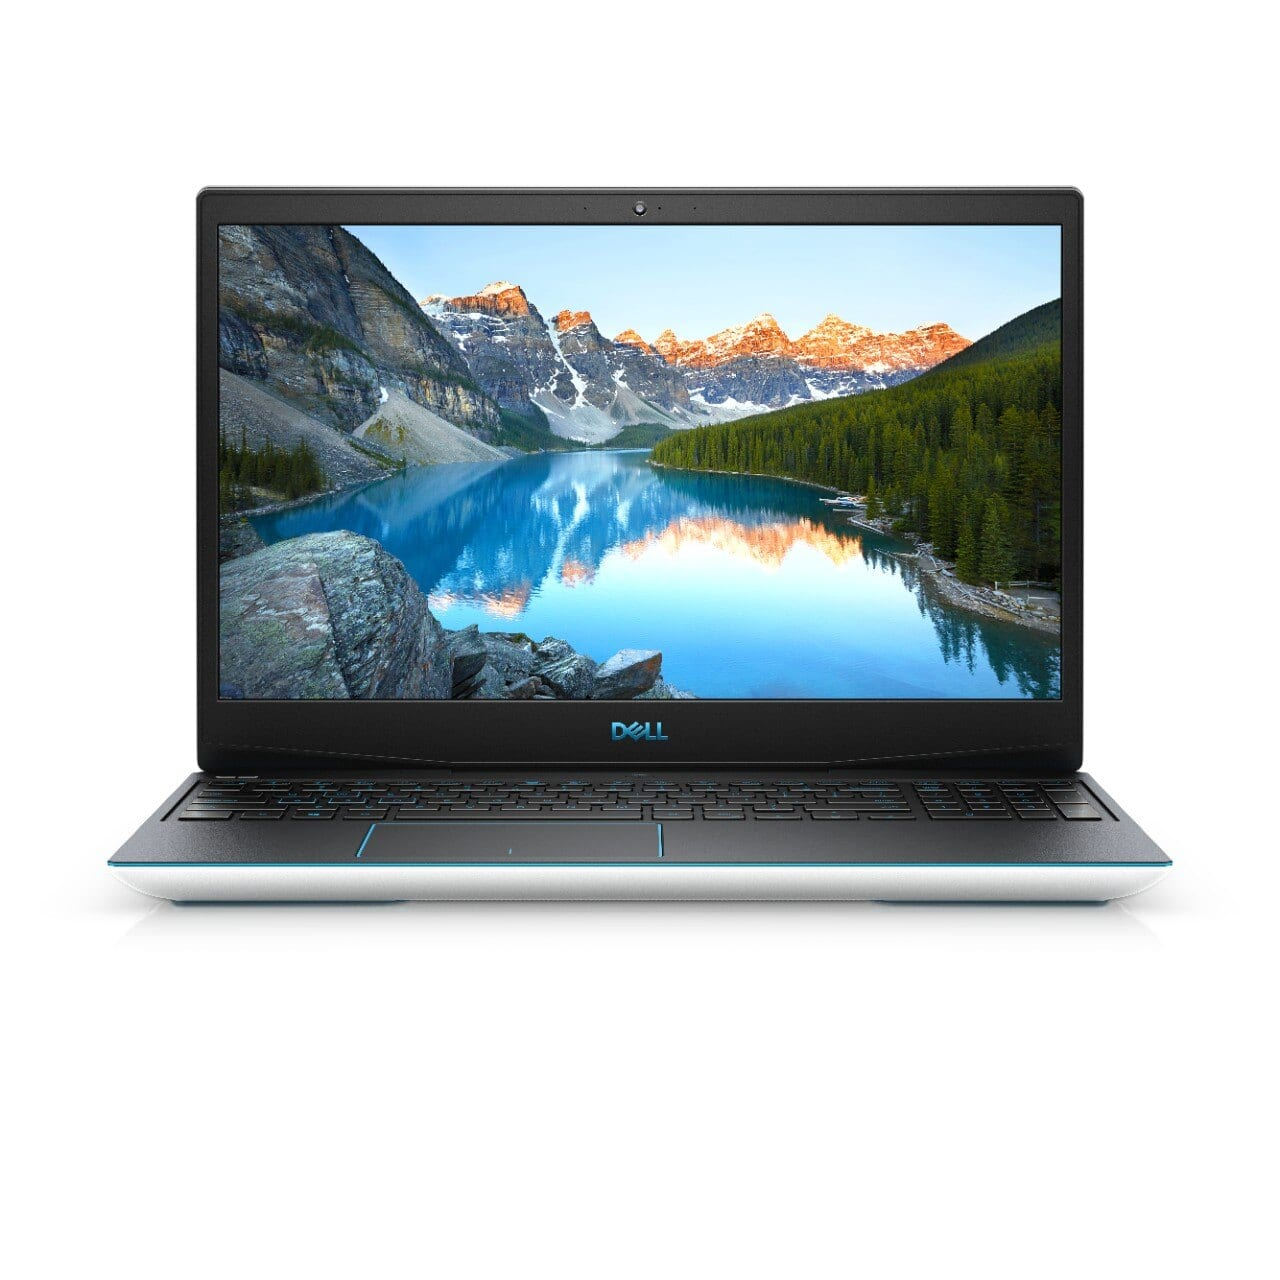 DELL G3 15 3590|I5-9300H|NVIDIA GTX 1660 TI|8GB RAM|512GB SSD|($297.15 Back in Rakuten Points) $849.99